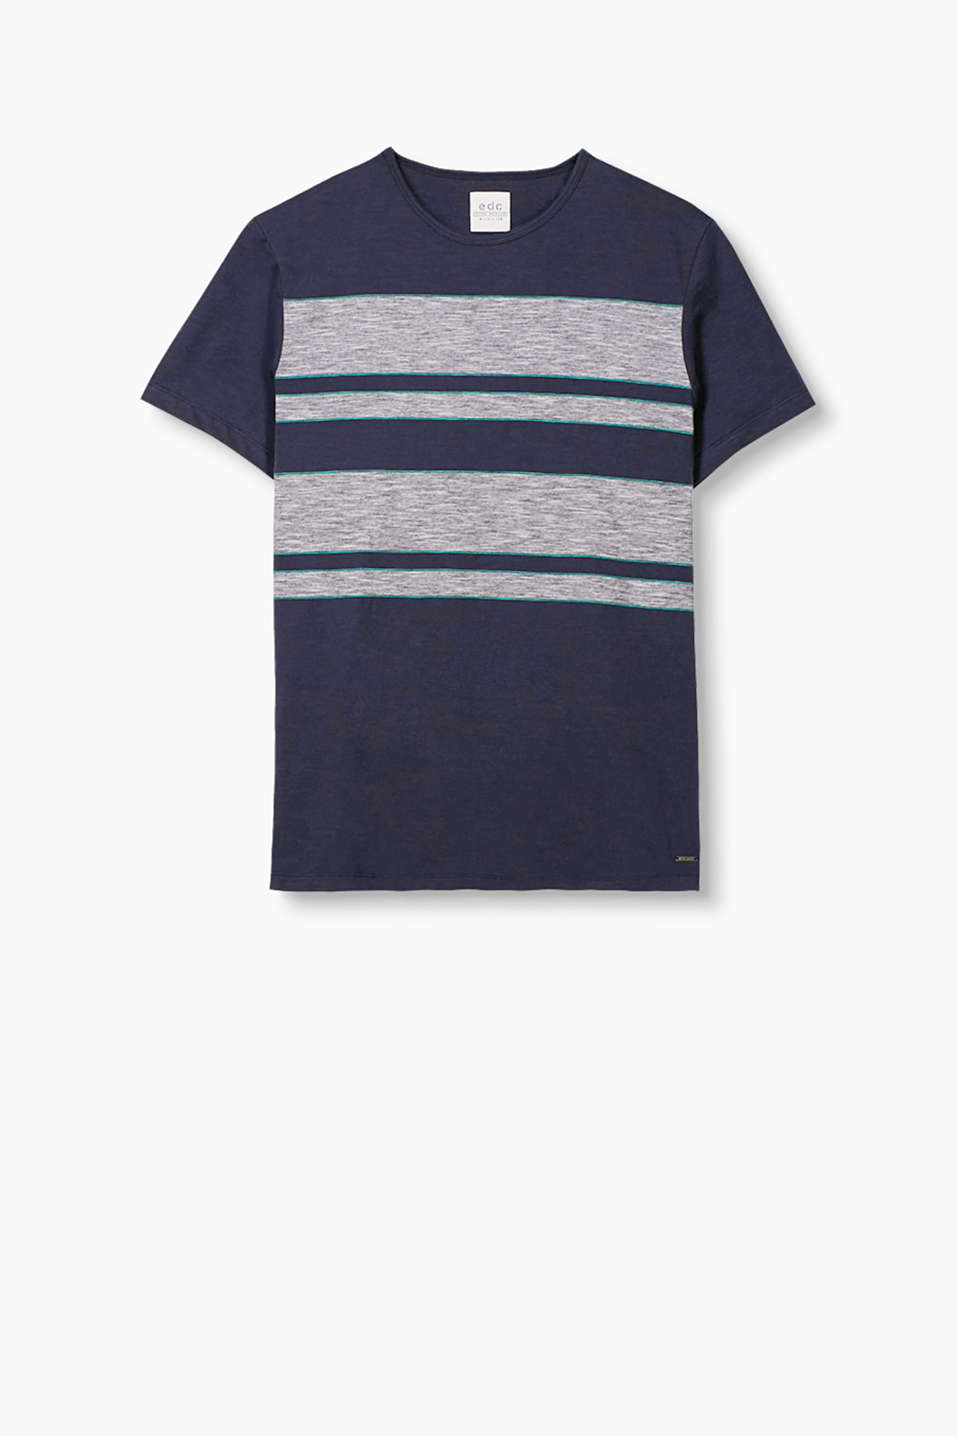 T-shirt with different wide stripes, with a round neckline in 100% cotton